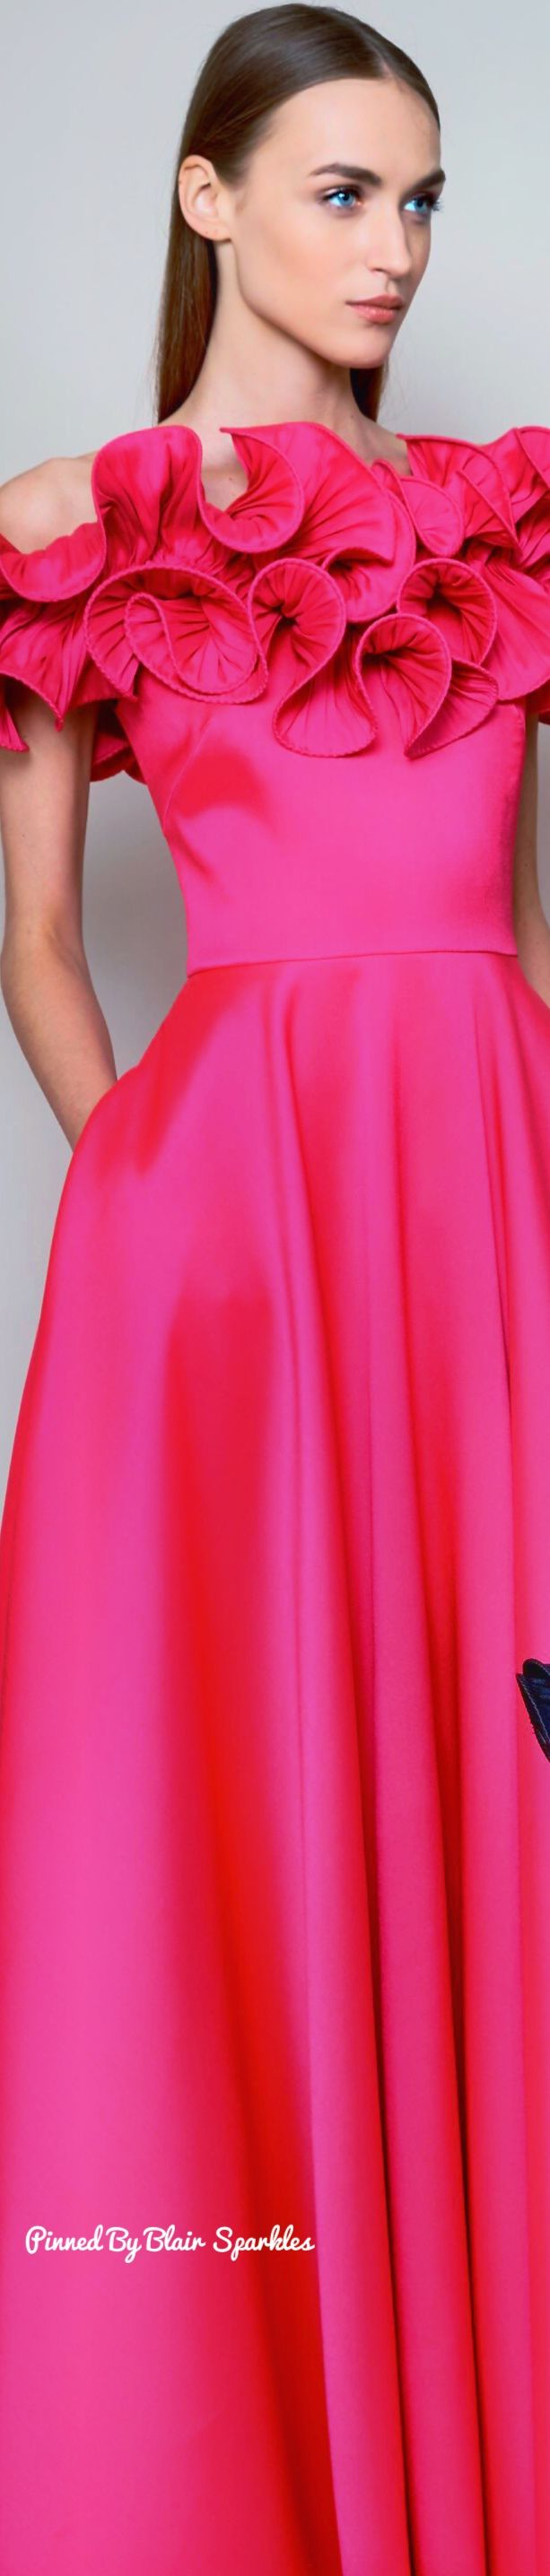 665 best Pink images on Pinterest   Pink fashion, Fashion 2016 and ...